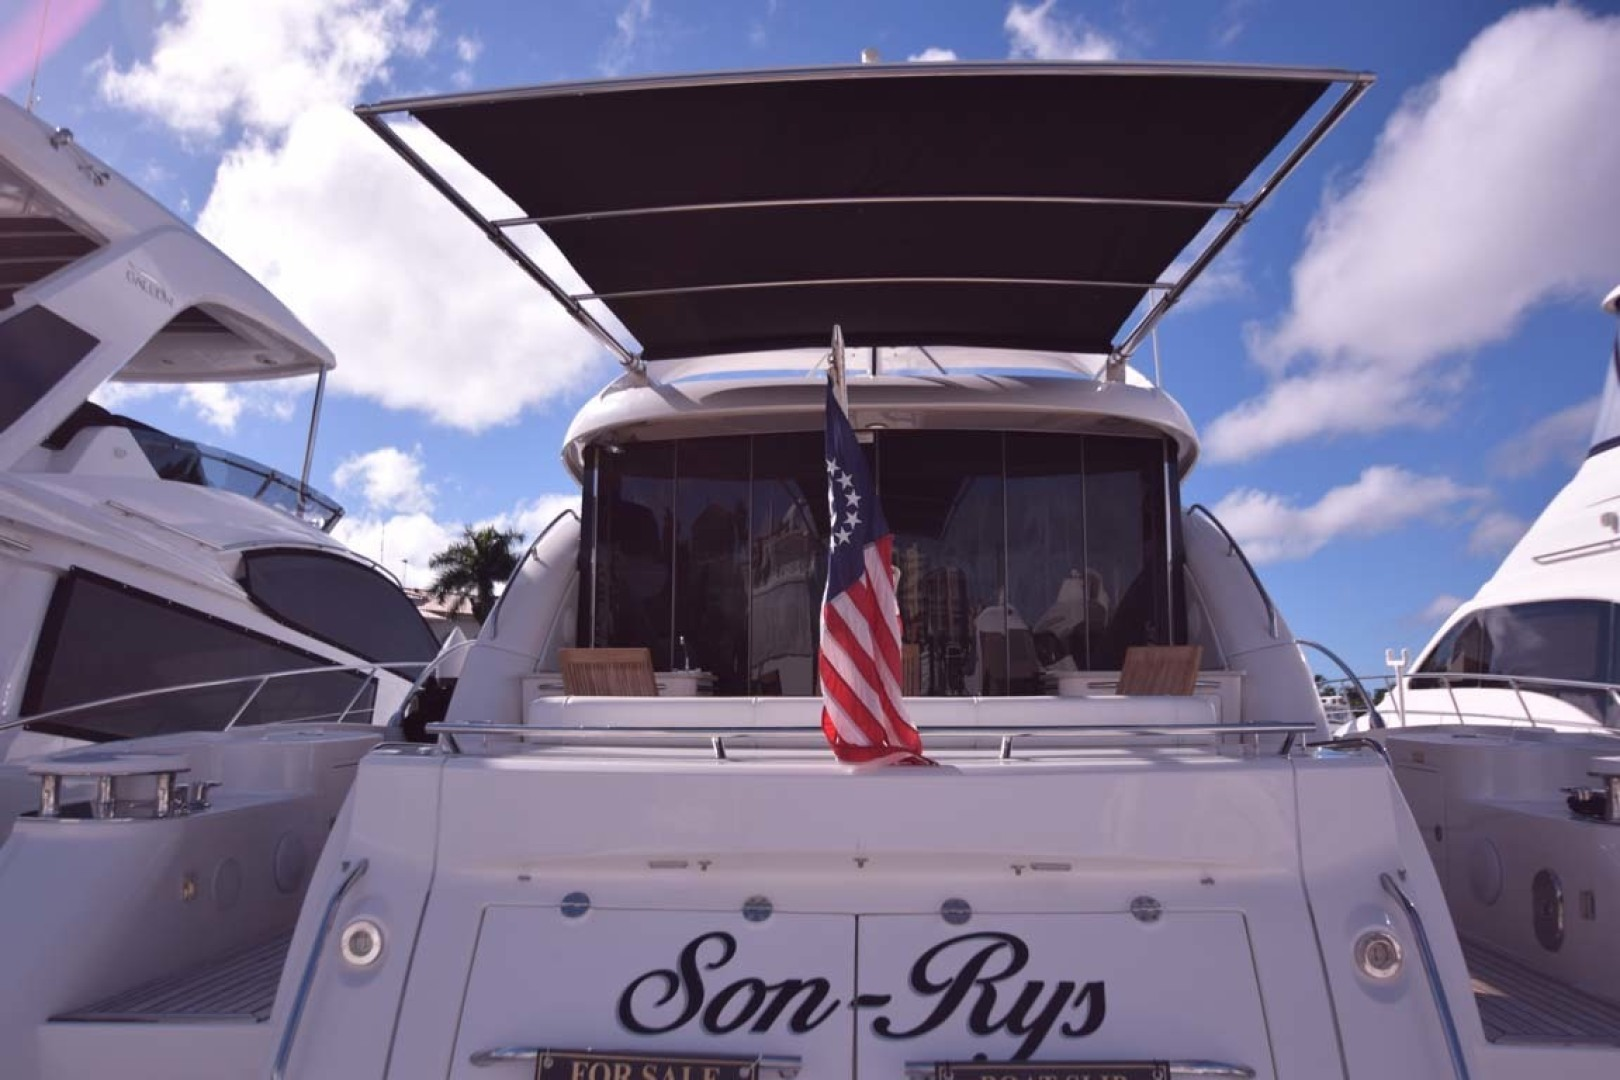 Sea Ray-Sundancer 610 2012-SON RYS Fort Myers-Florida-United States-Electronic Sunshade Covering Aft Deating-1298485 | Thumbnail